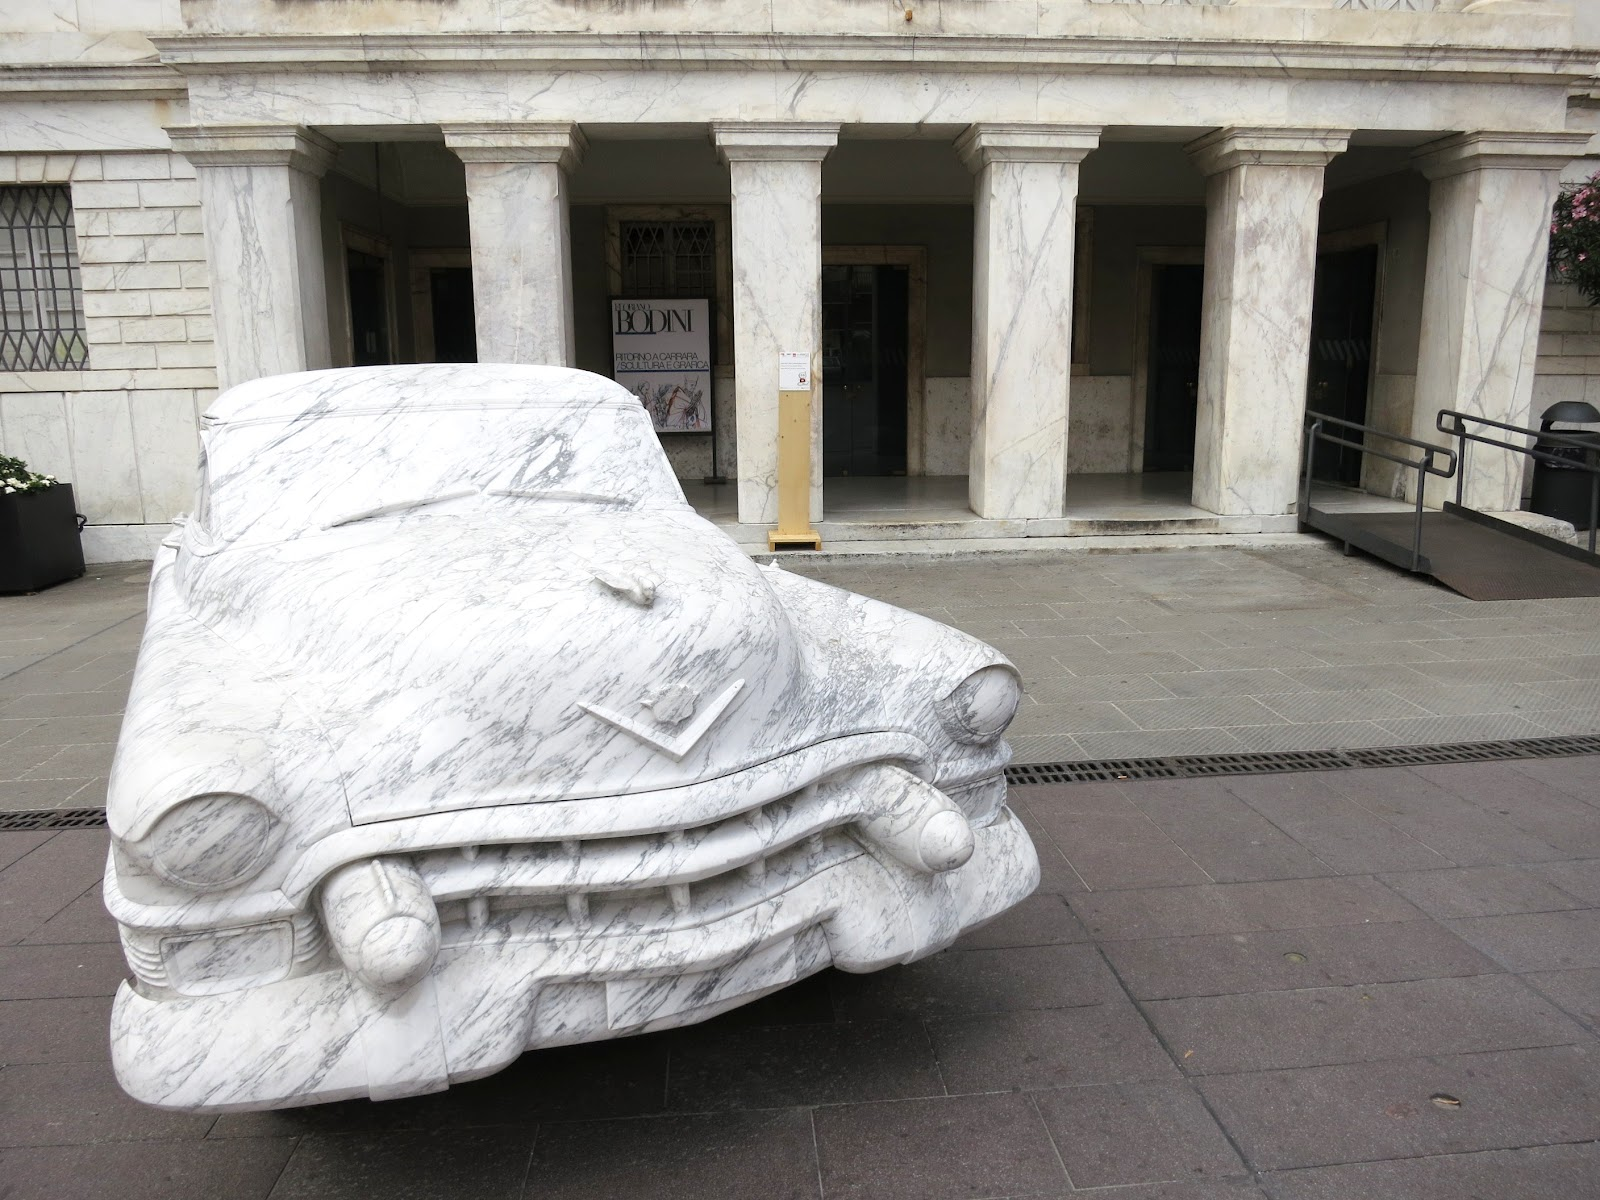 cadillac capital one html with Carrara Anarchy Michelangelo Marble on Carrara Anarchy Michelangelo Marble in addition El Vehiculo De Obama La Bestia Es Alimentado En Toluca 6a26905f76224410VgnVCM4000009bcceb0aRCRD besides Nashville Fashion Week 2015 additionally 1037602 Recession Lie See 10 Luxury Cars Nigerian Rulers Drove Sokoto Durbar likewise Best Time To Order A Corvette.